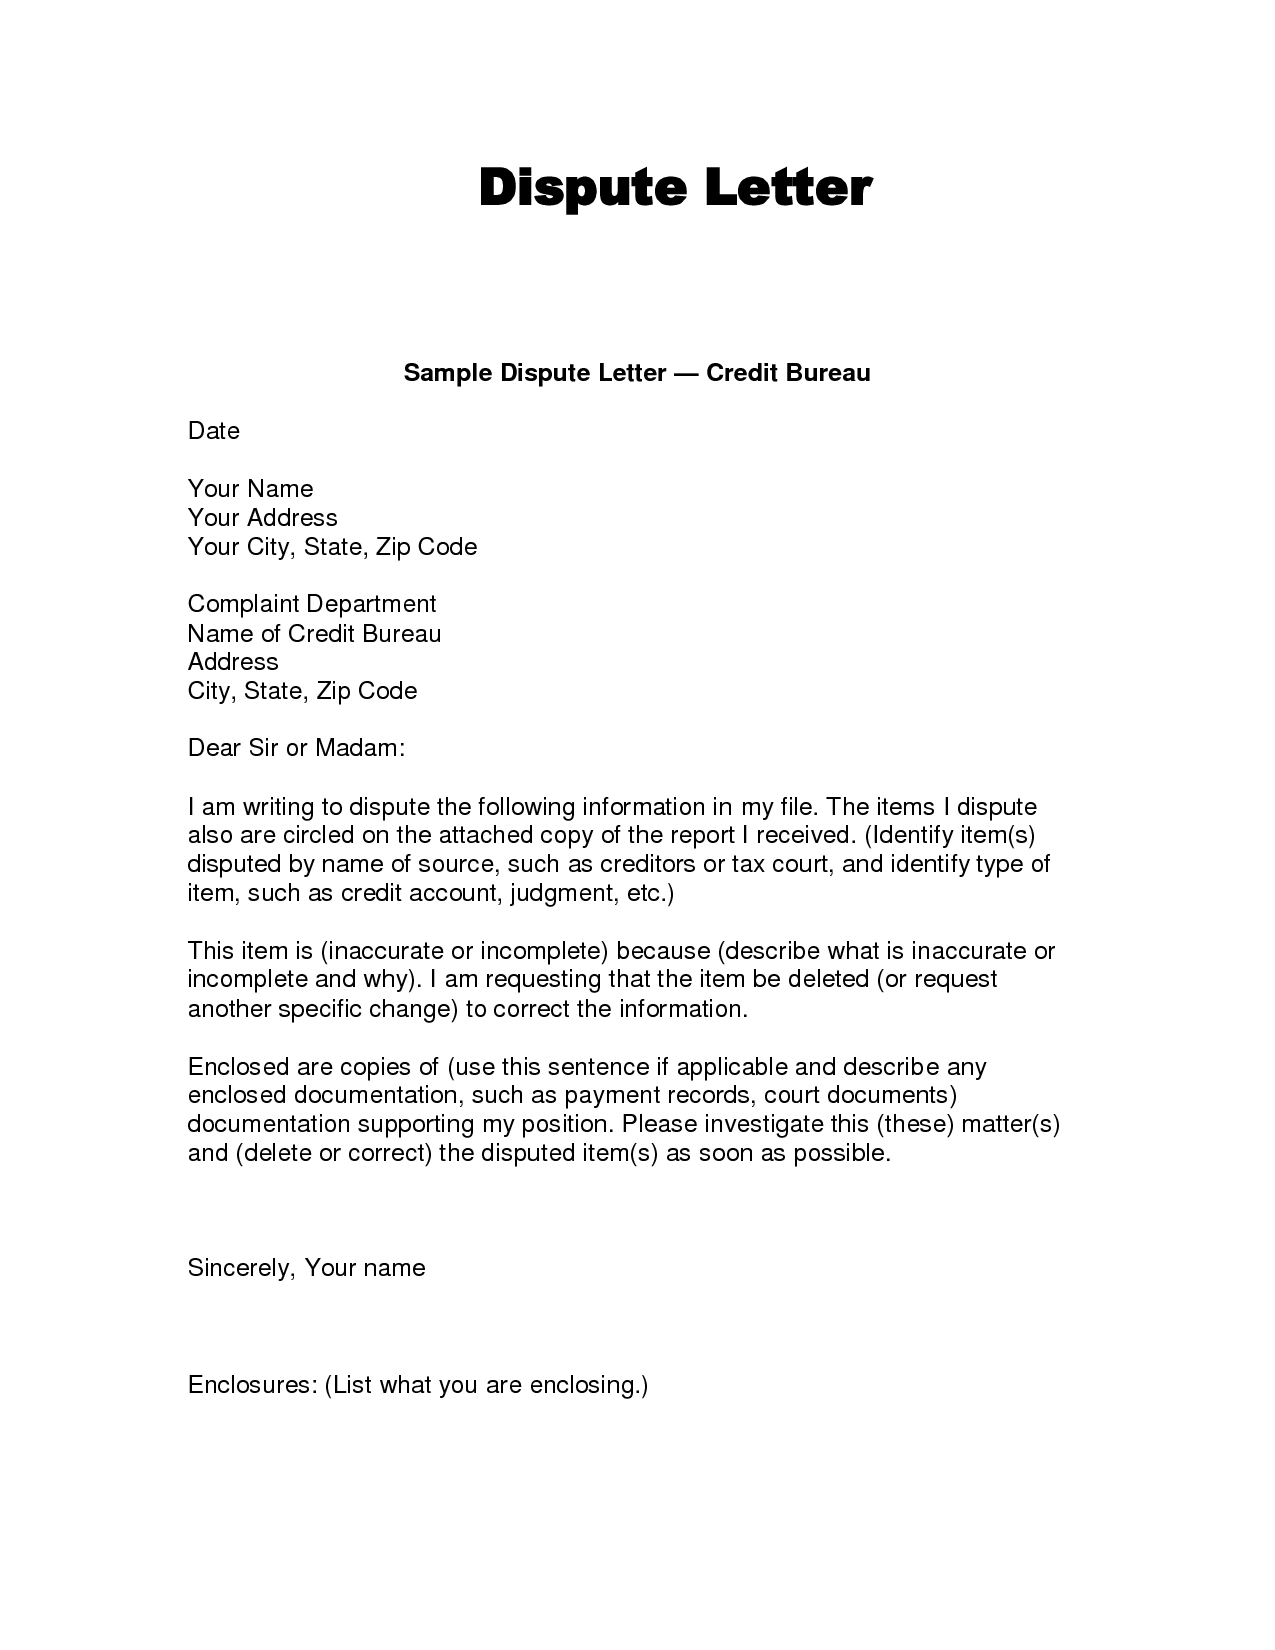 Credit Card Dispute Letter Template - Credit Dispute Letter Templates Acurnamedia